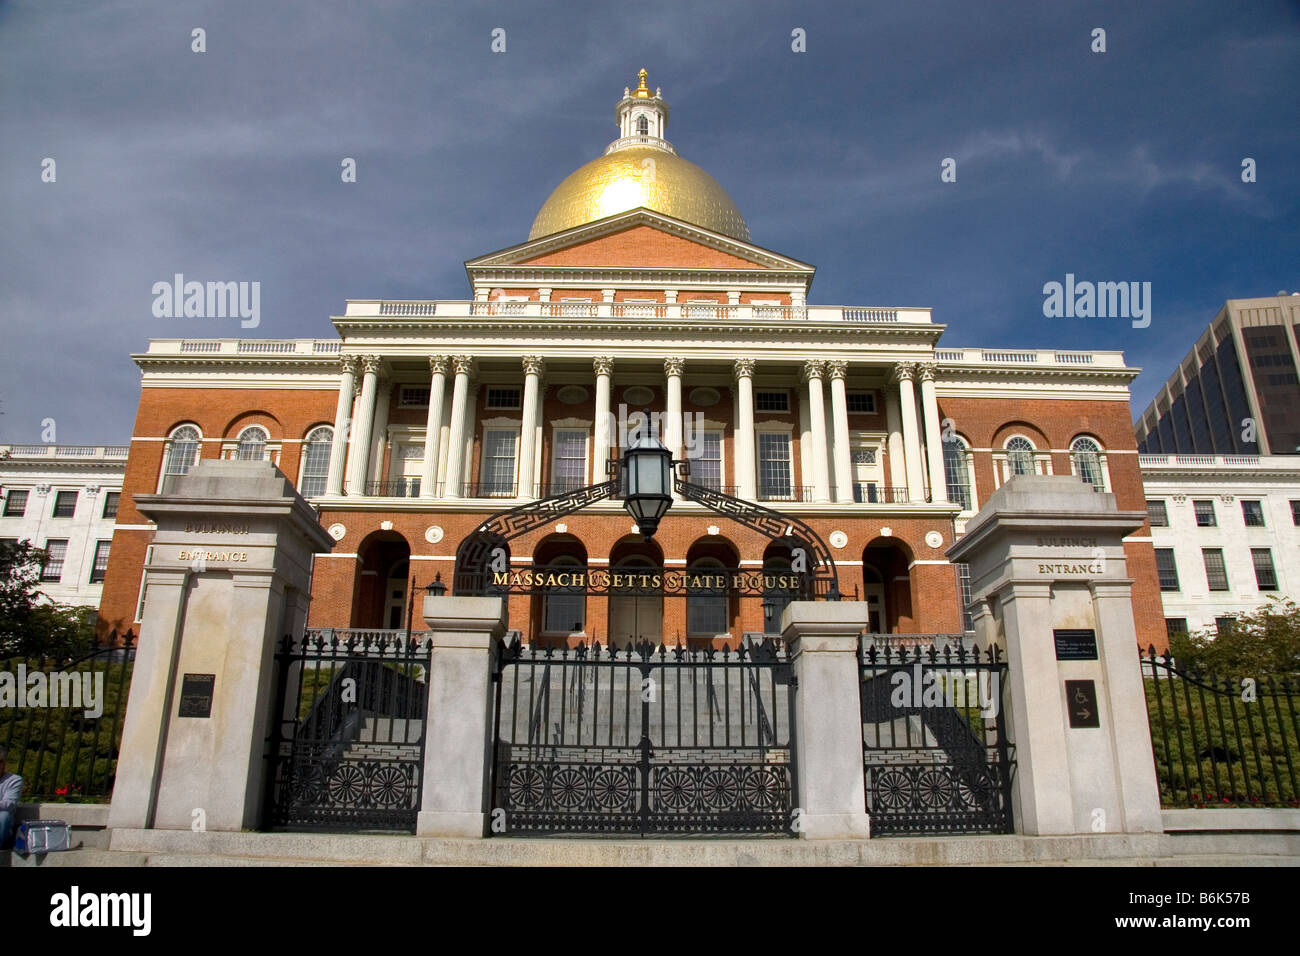 El estado de Massachusetts Casa situada en el barrio de Beacon Hill, Boston, Massachusetts EE.UU. Imagen De Stock